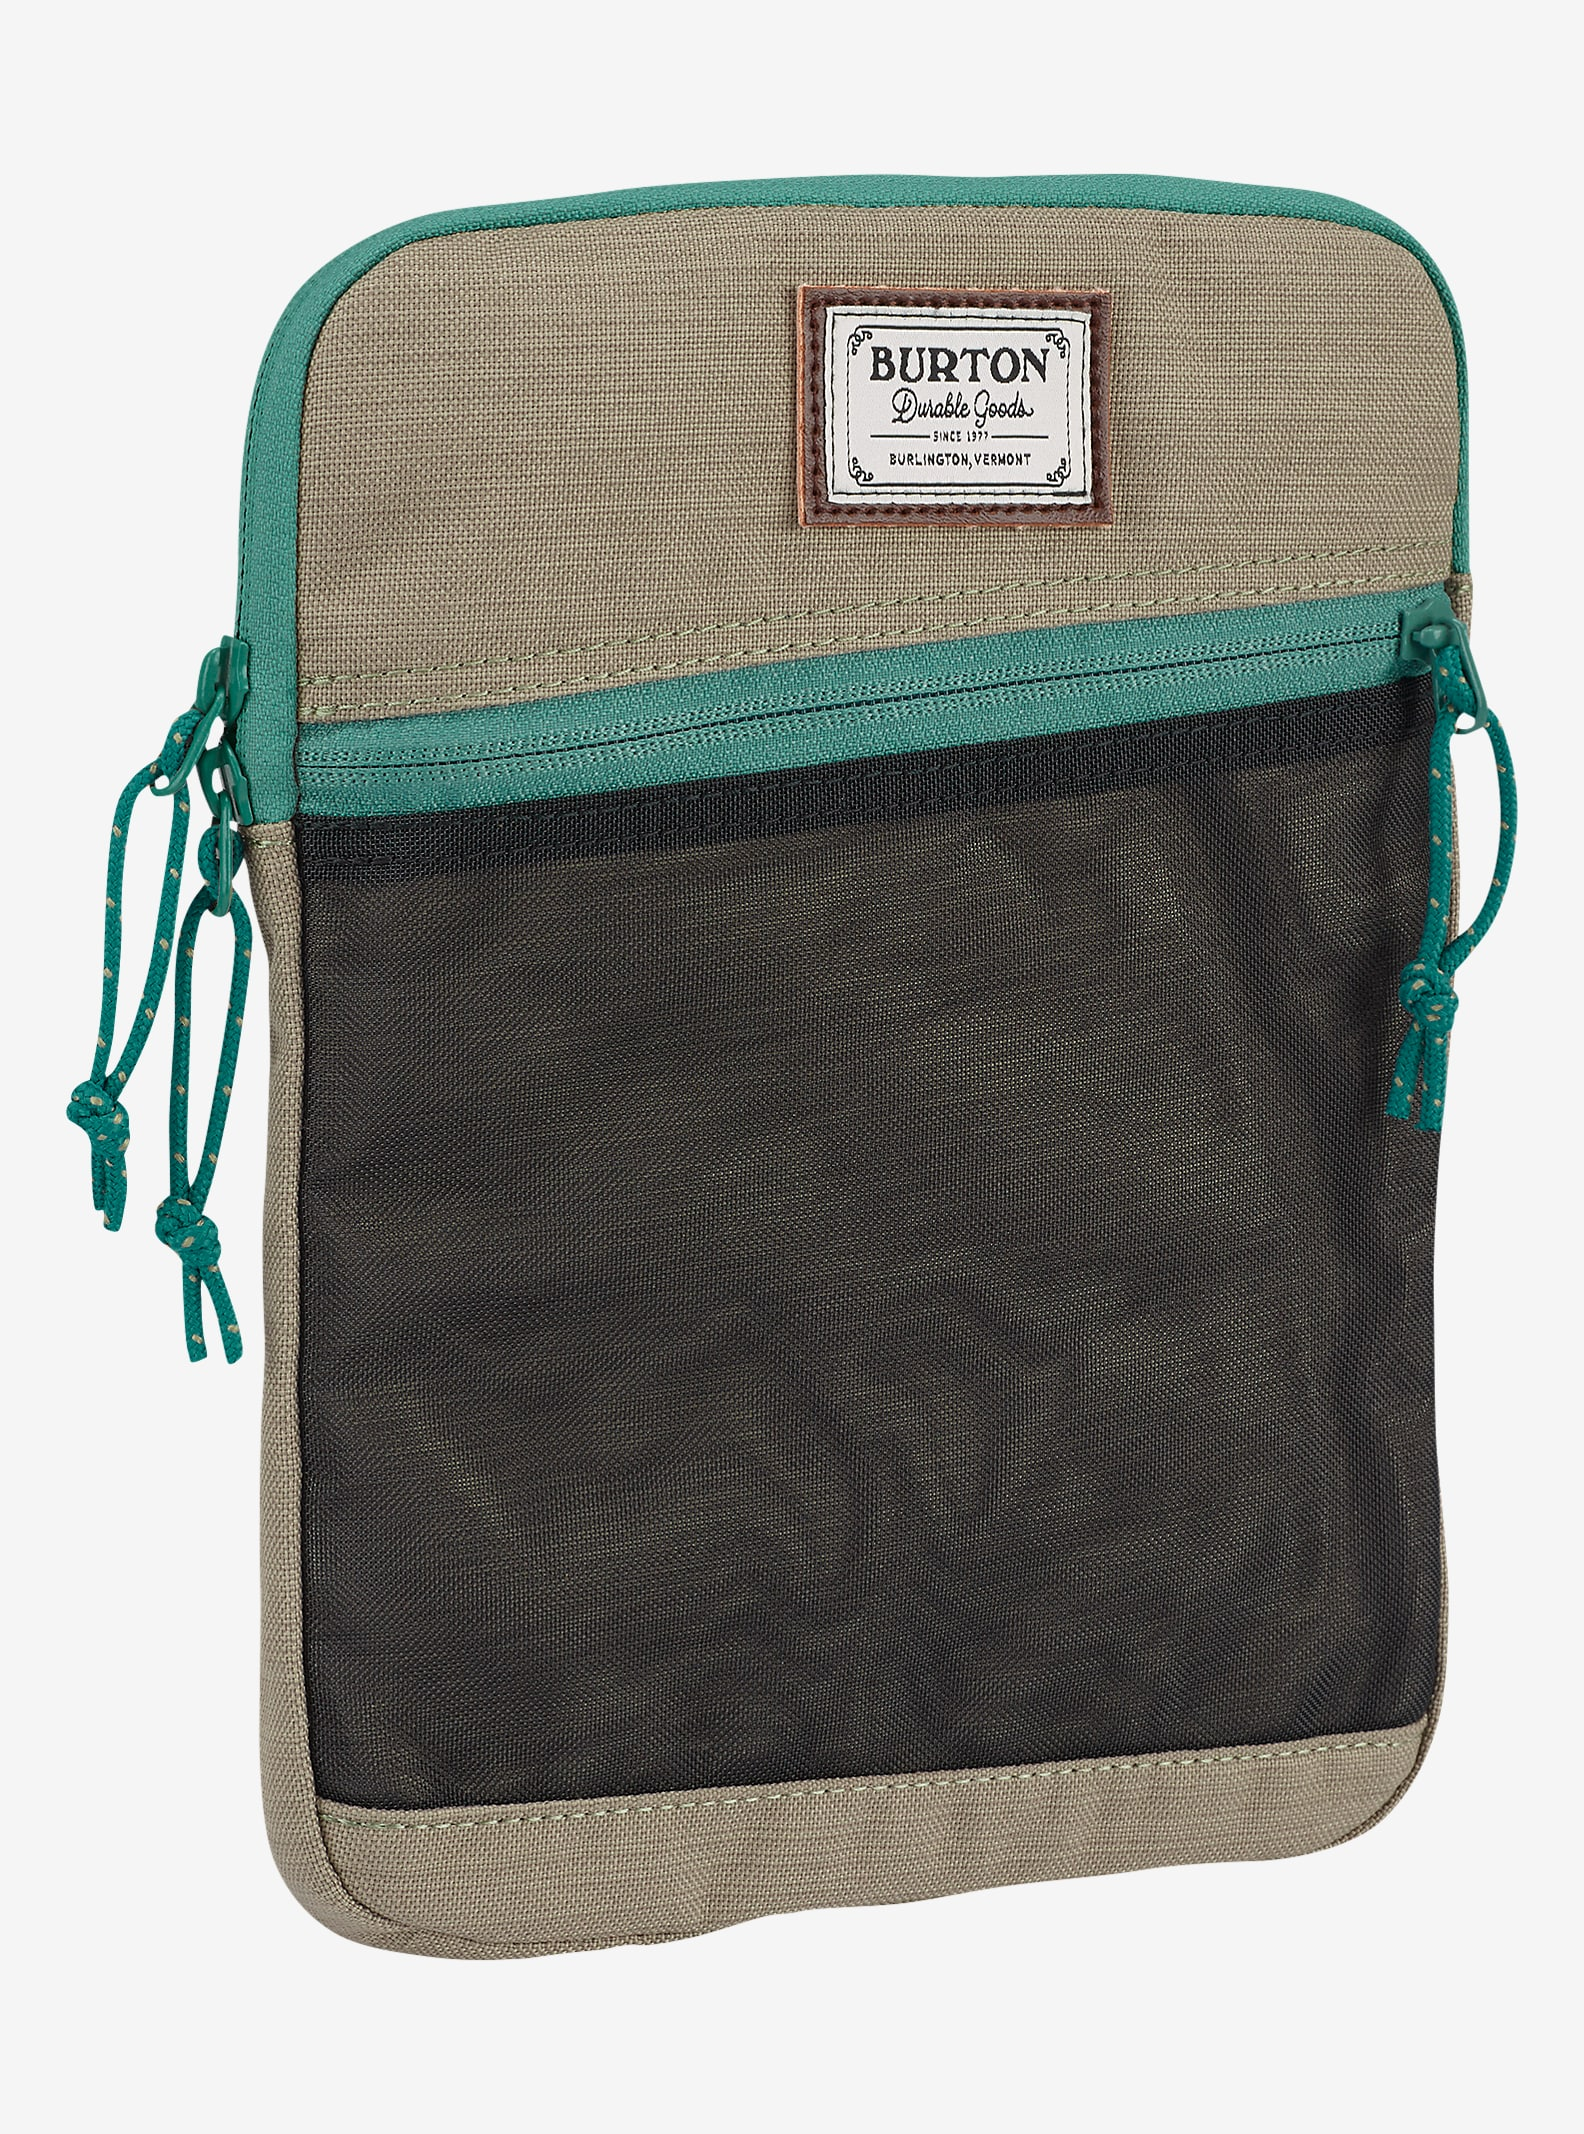 Burton Hyperlink 10in Tablet Sleeve shown in Rucksack Slub